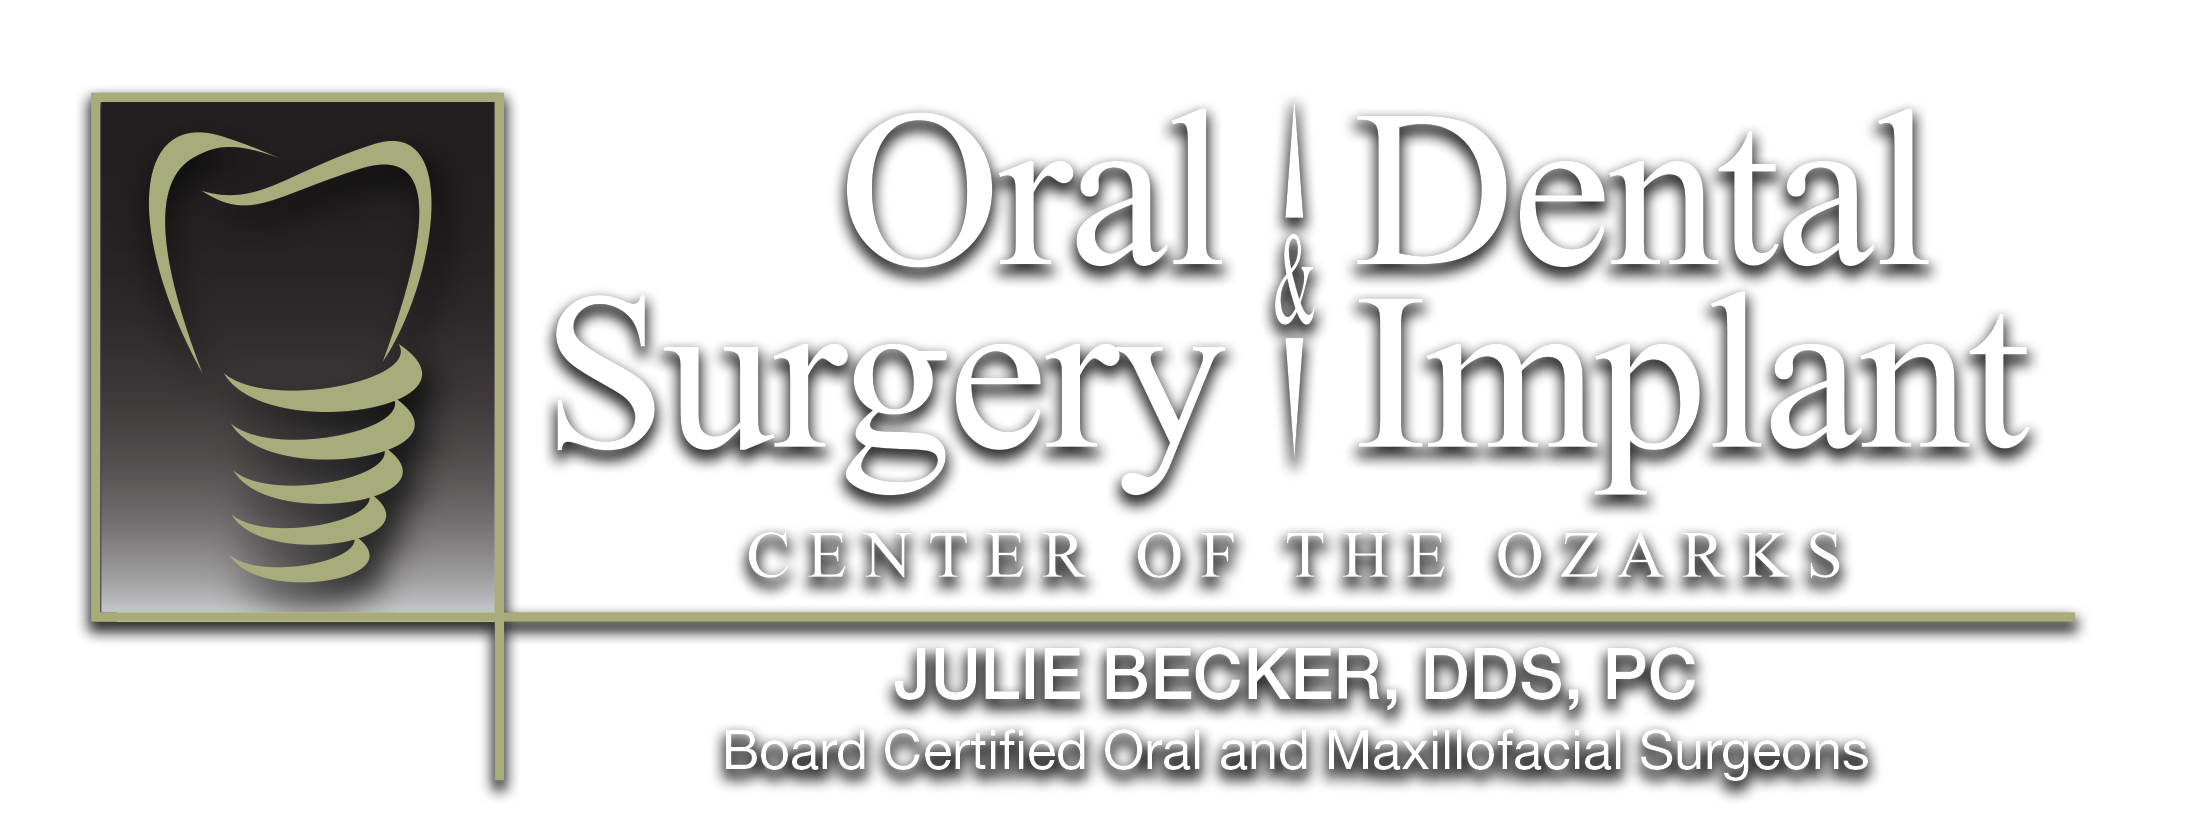 Oral Surgery and Dental Implant Center of the Ozarks logo